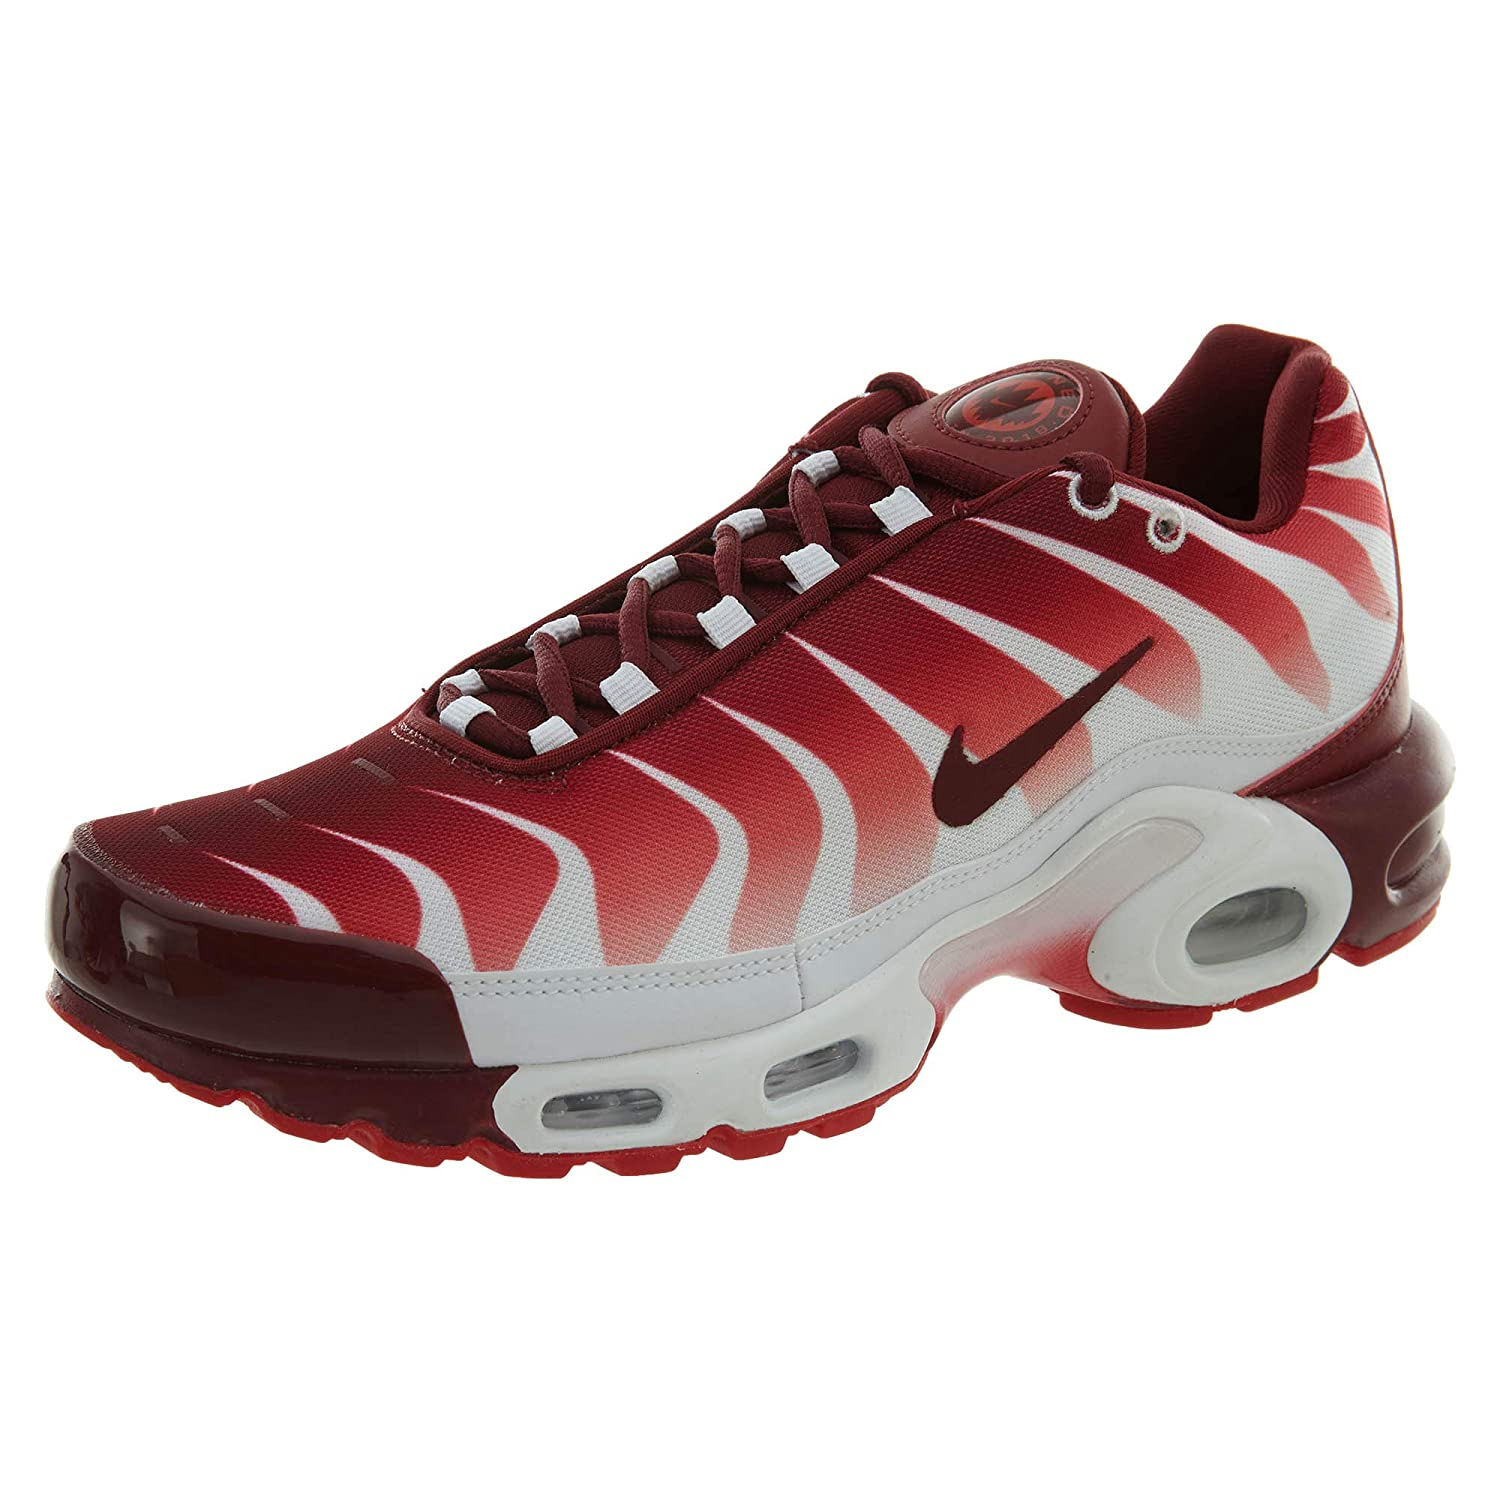 Nike Air Max Plus TN Tuned SE After The Bite Men's Trainers